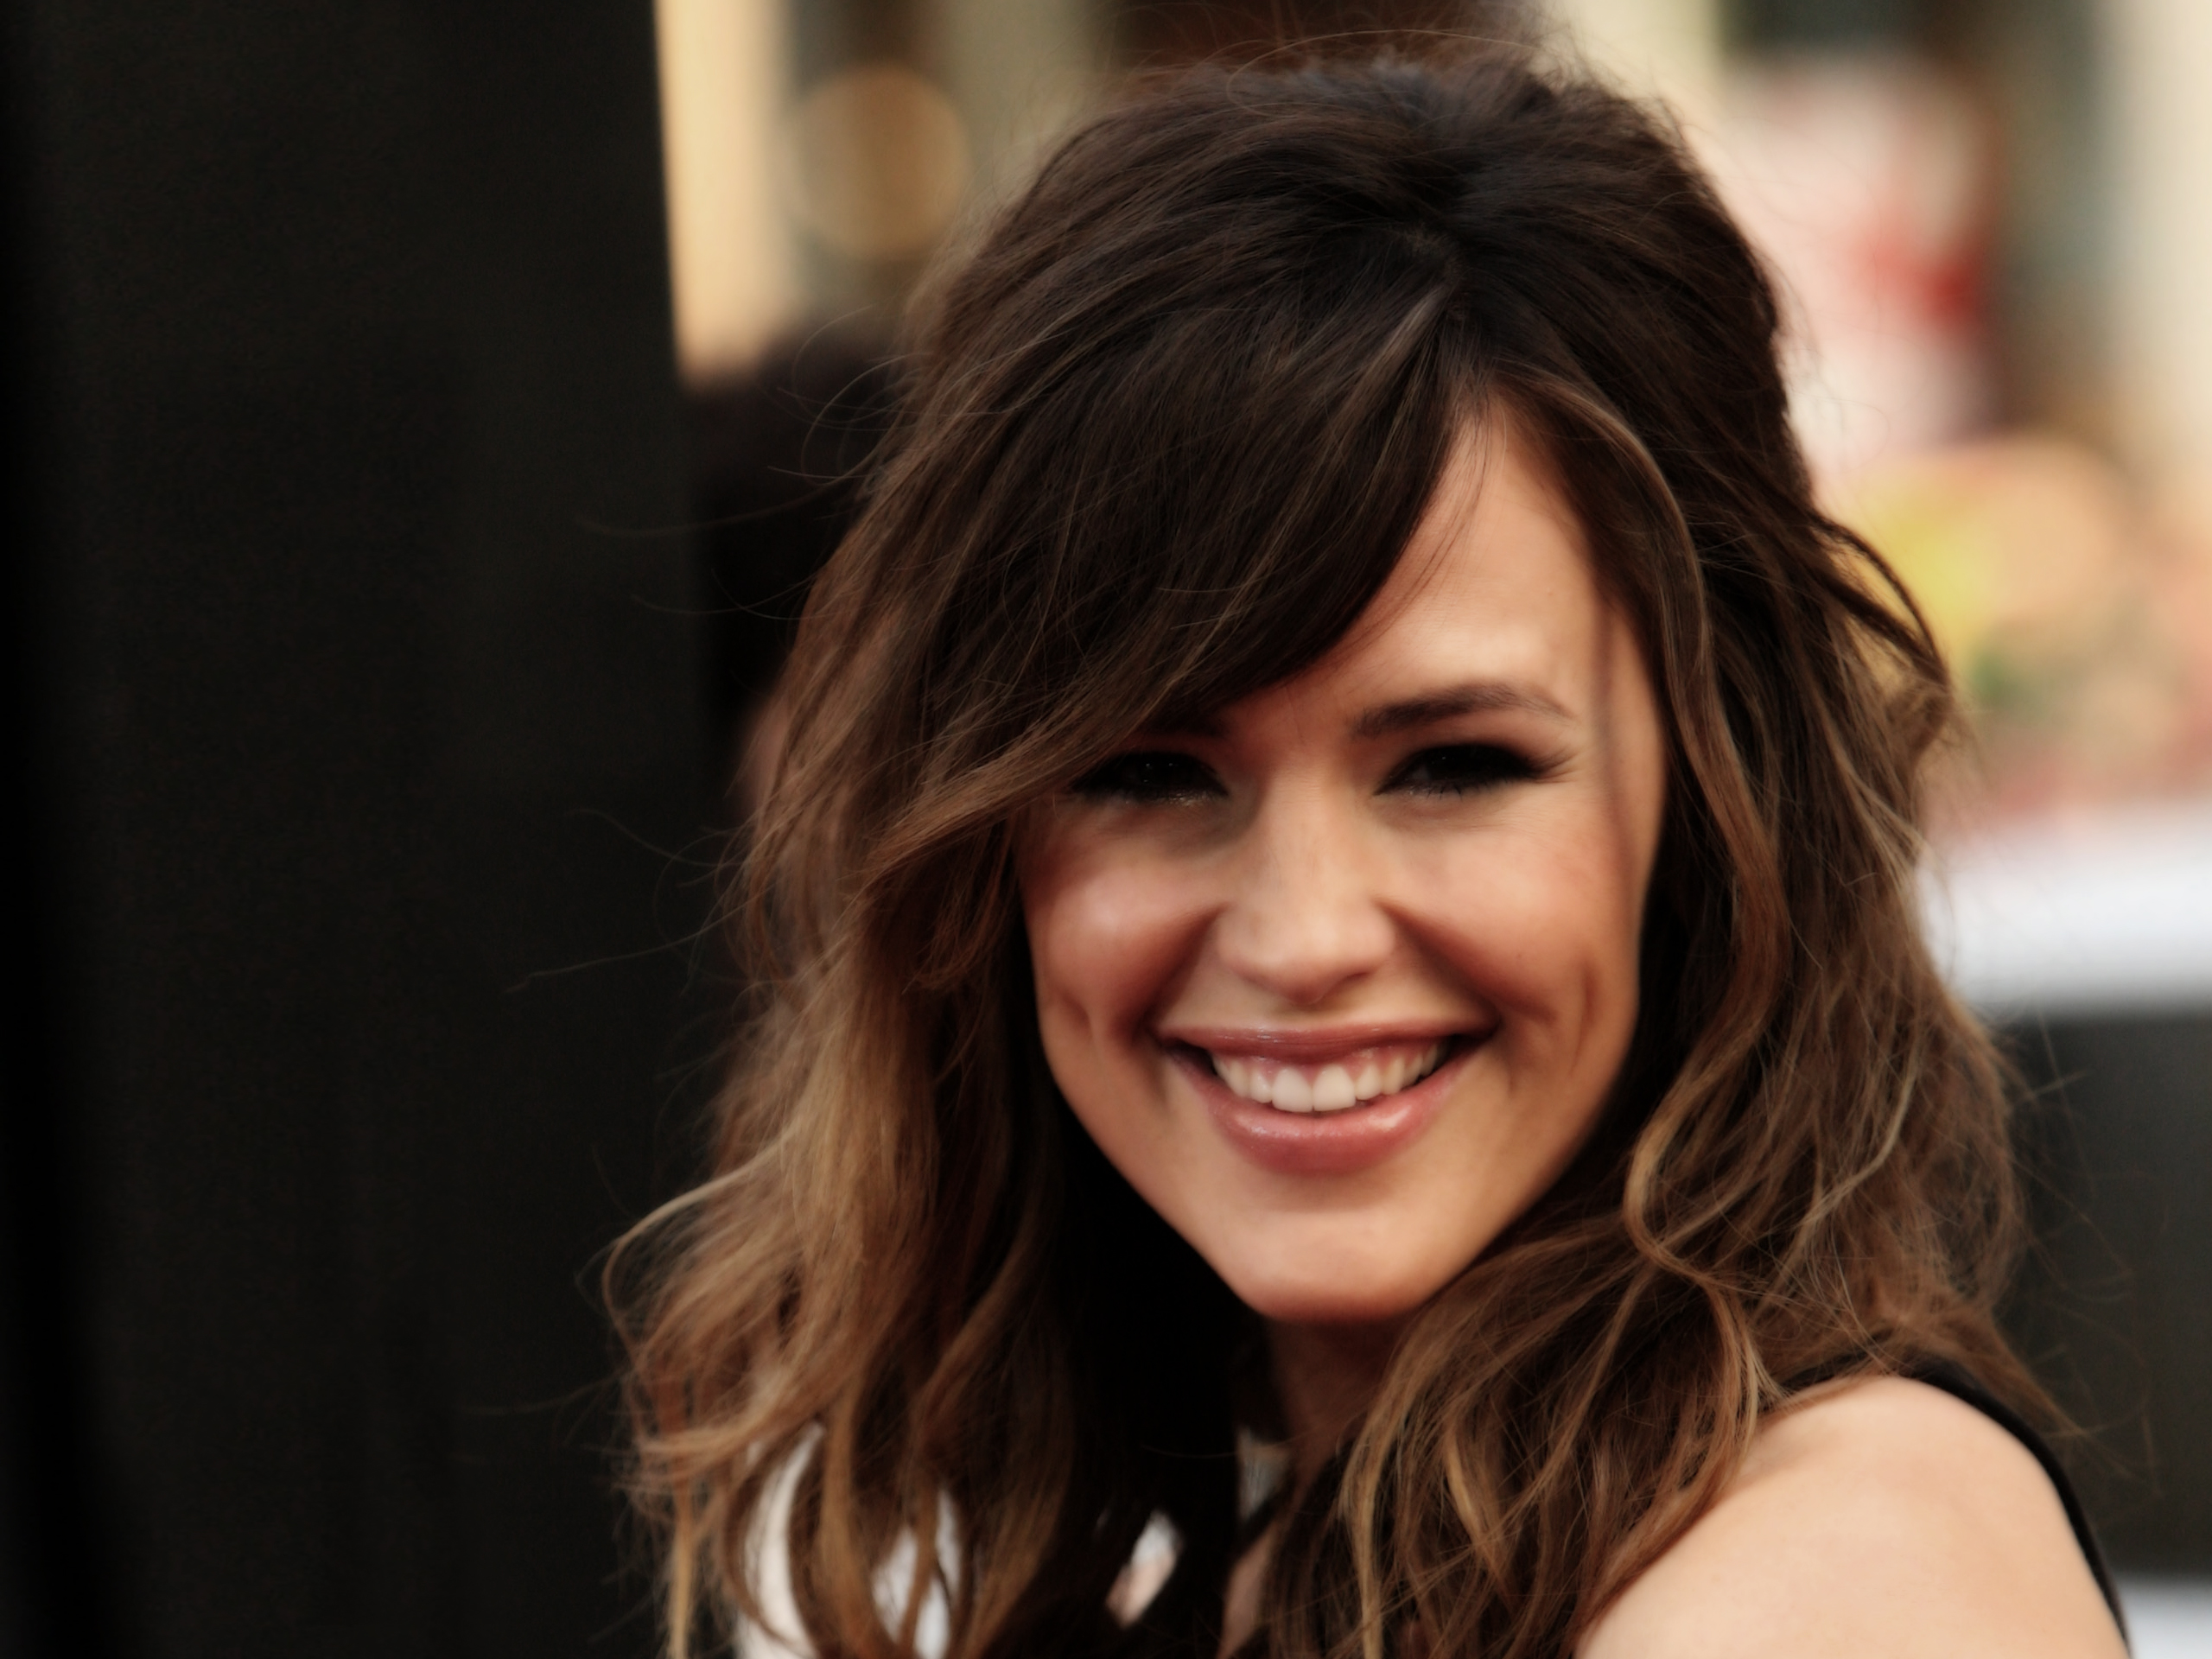 http://im07.thewallpapers.org/photo/28379/2-Jennifer-garner-001.jpg